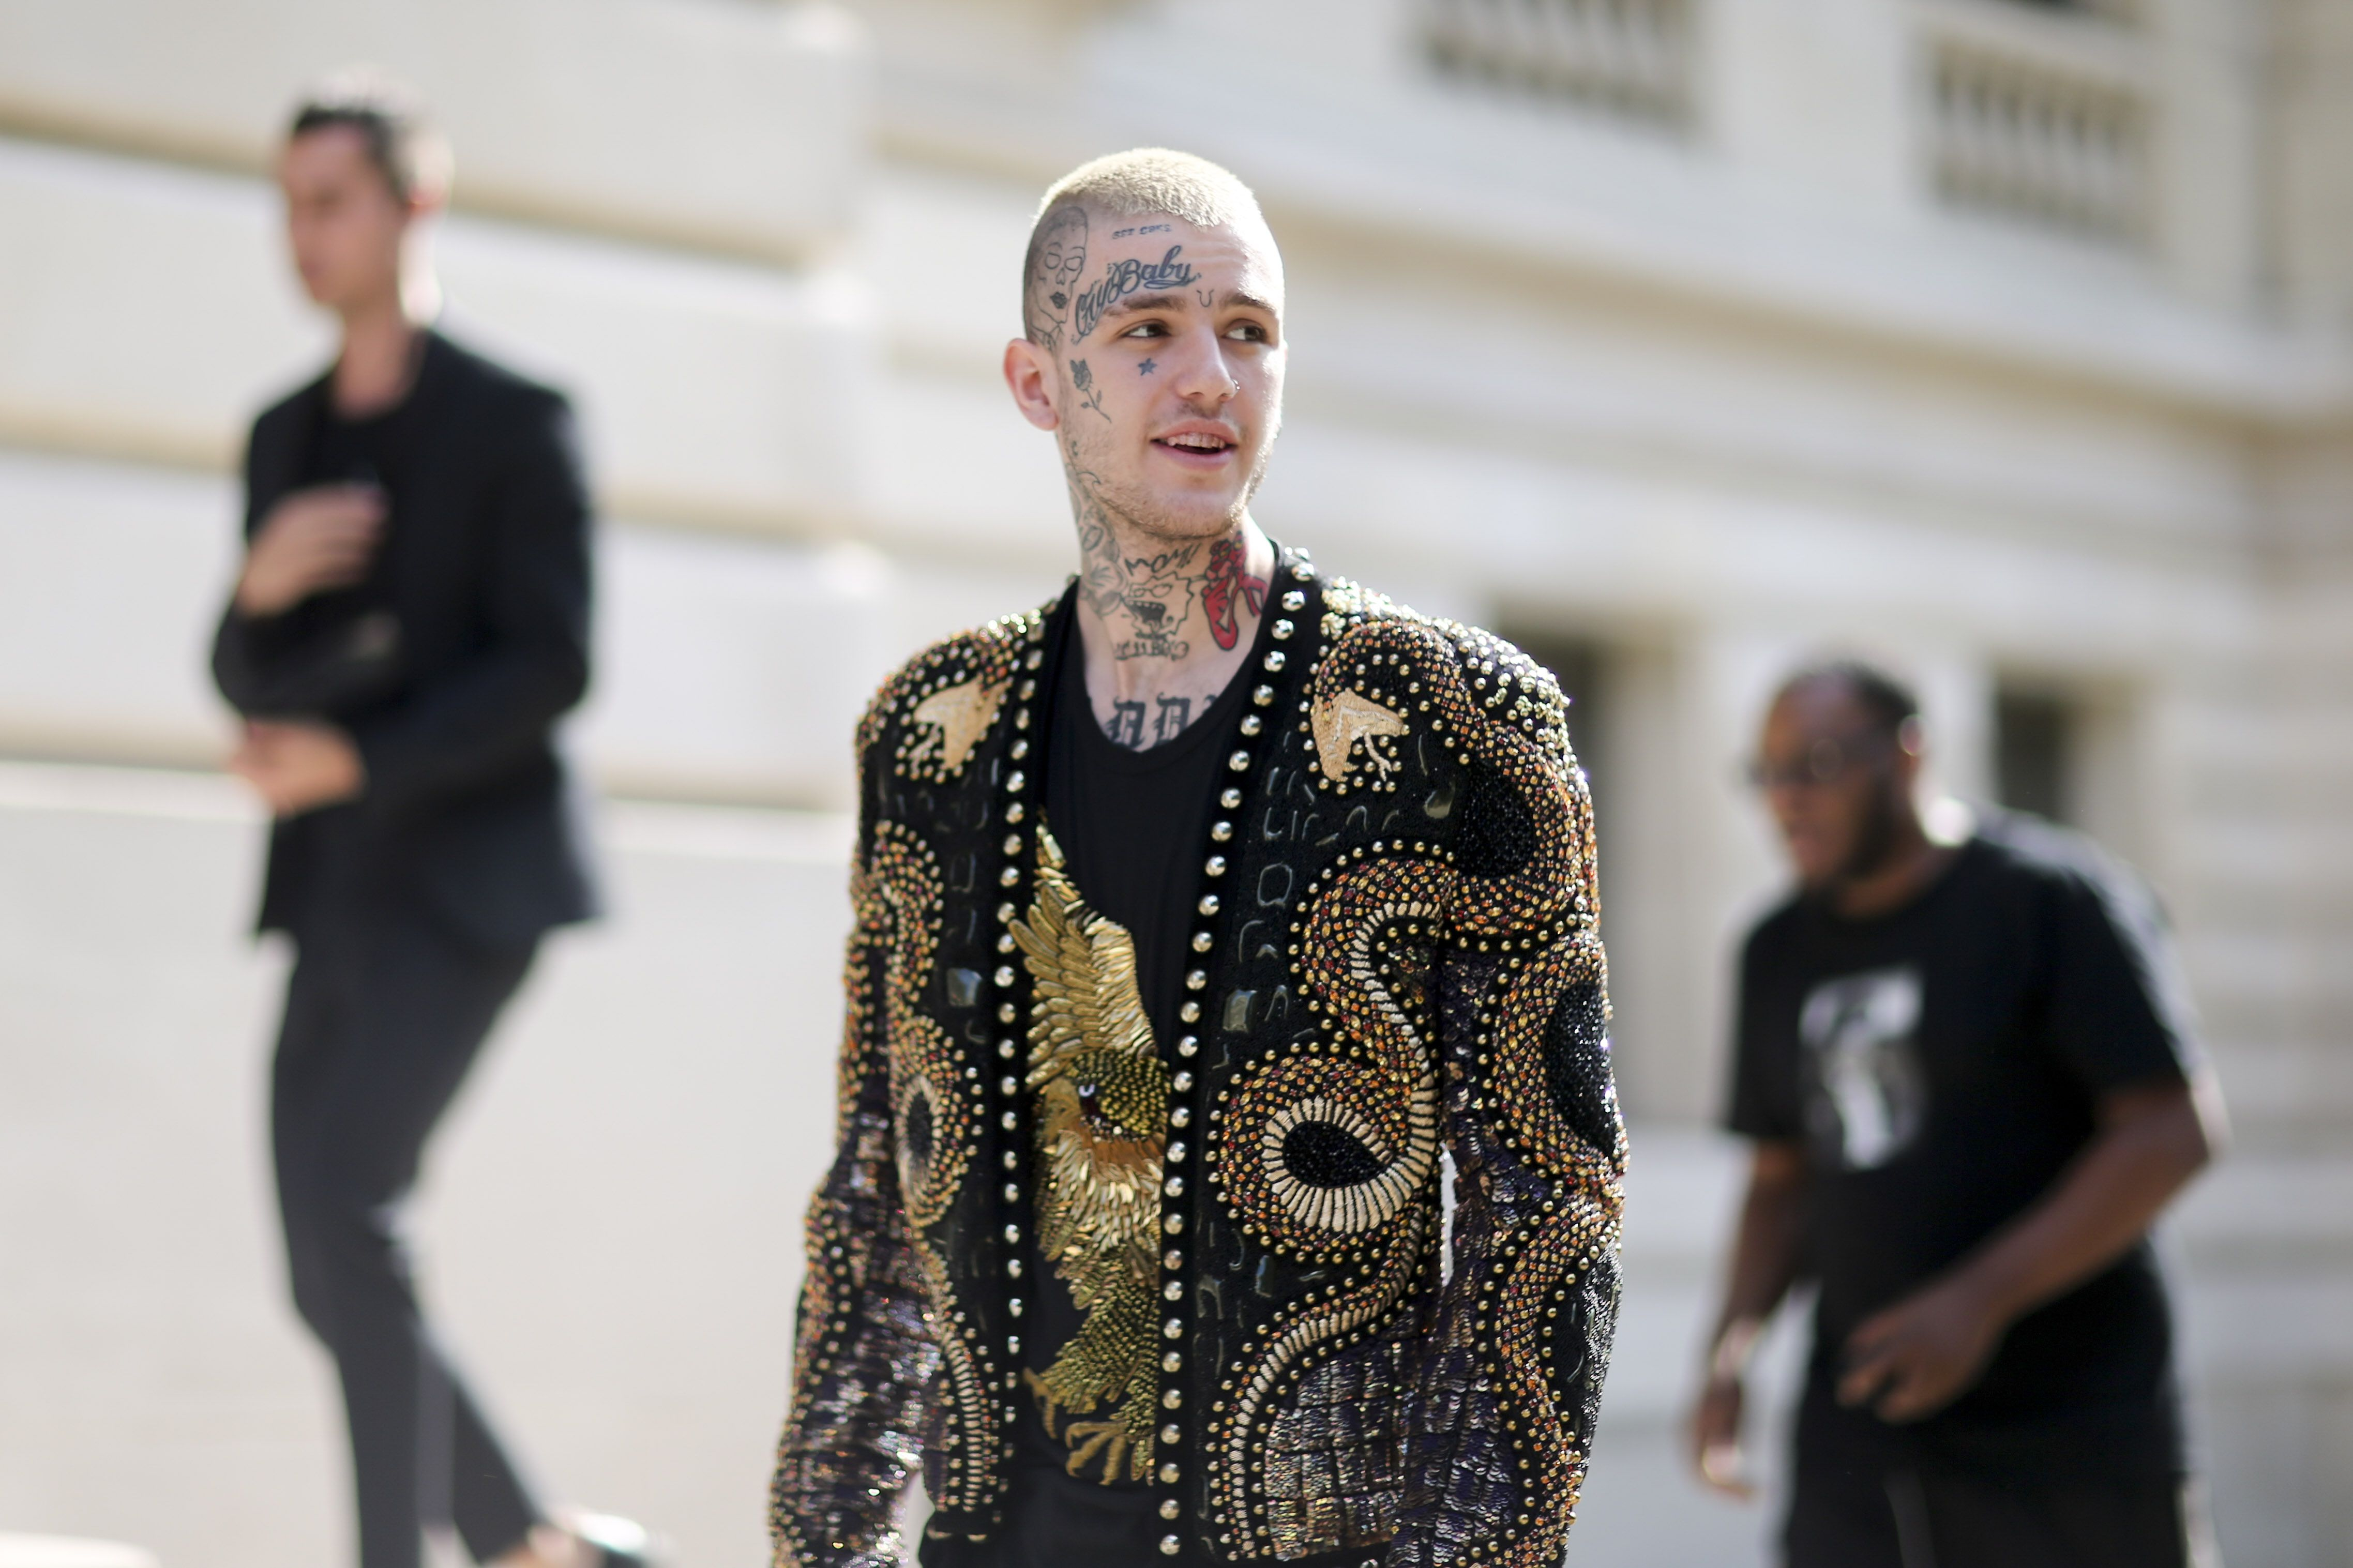 Police Open Investigation Into Death Of Bisexual Rapper Lil Peep ...